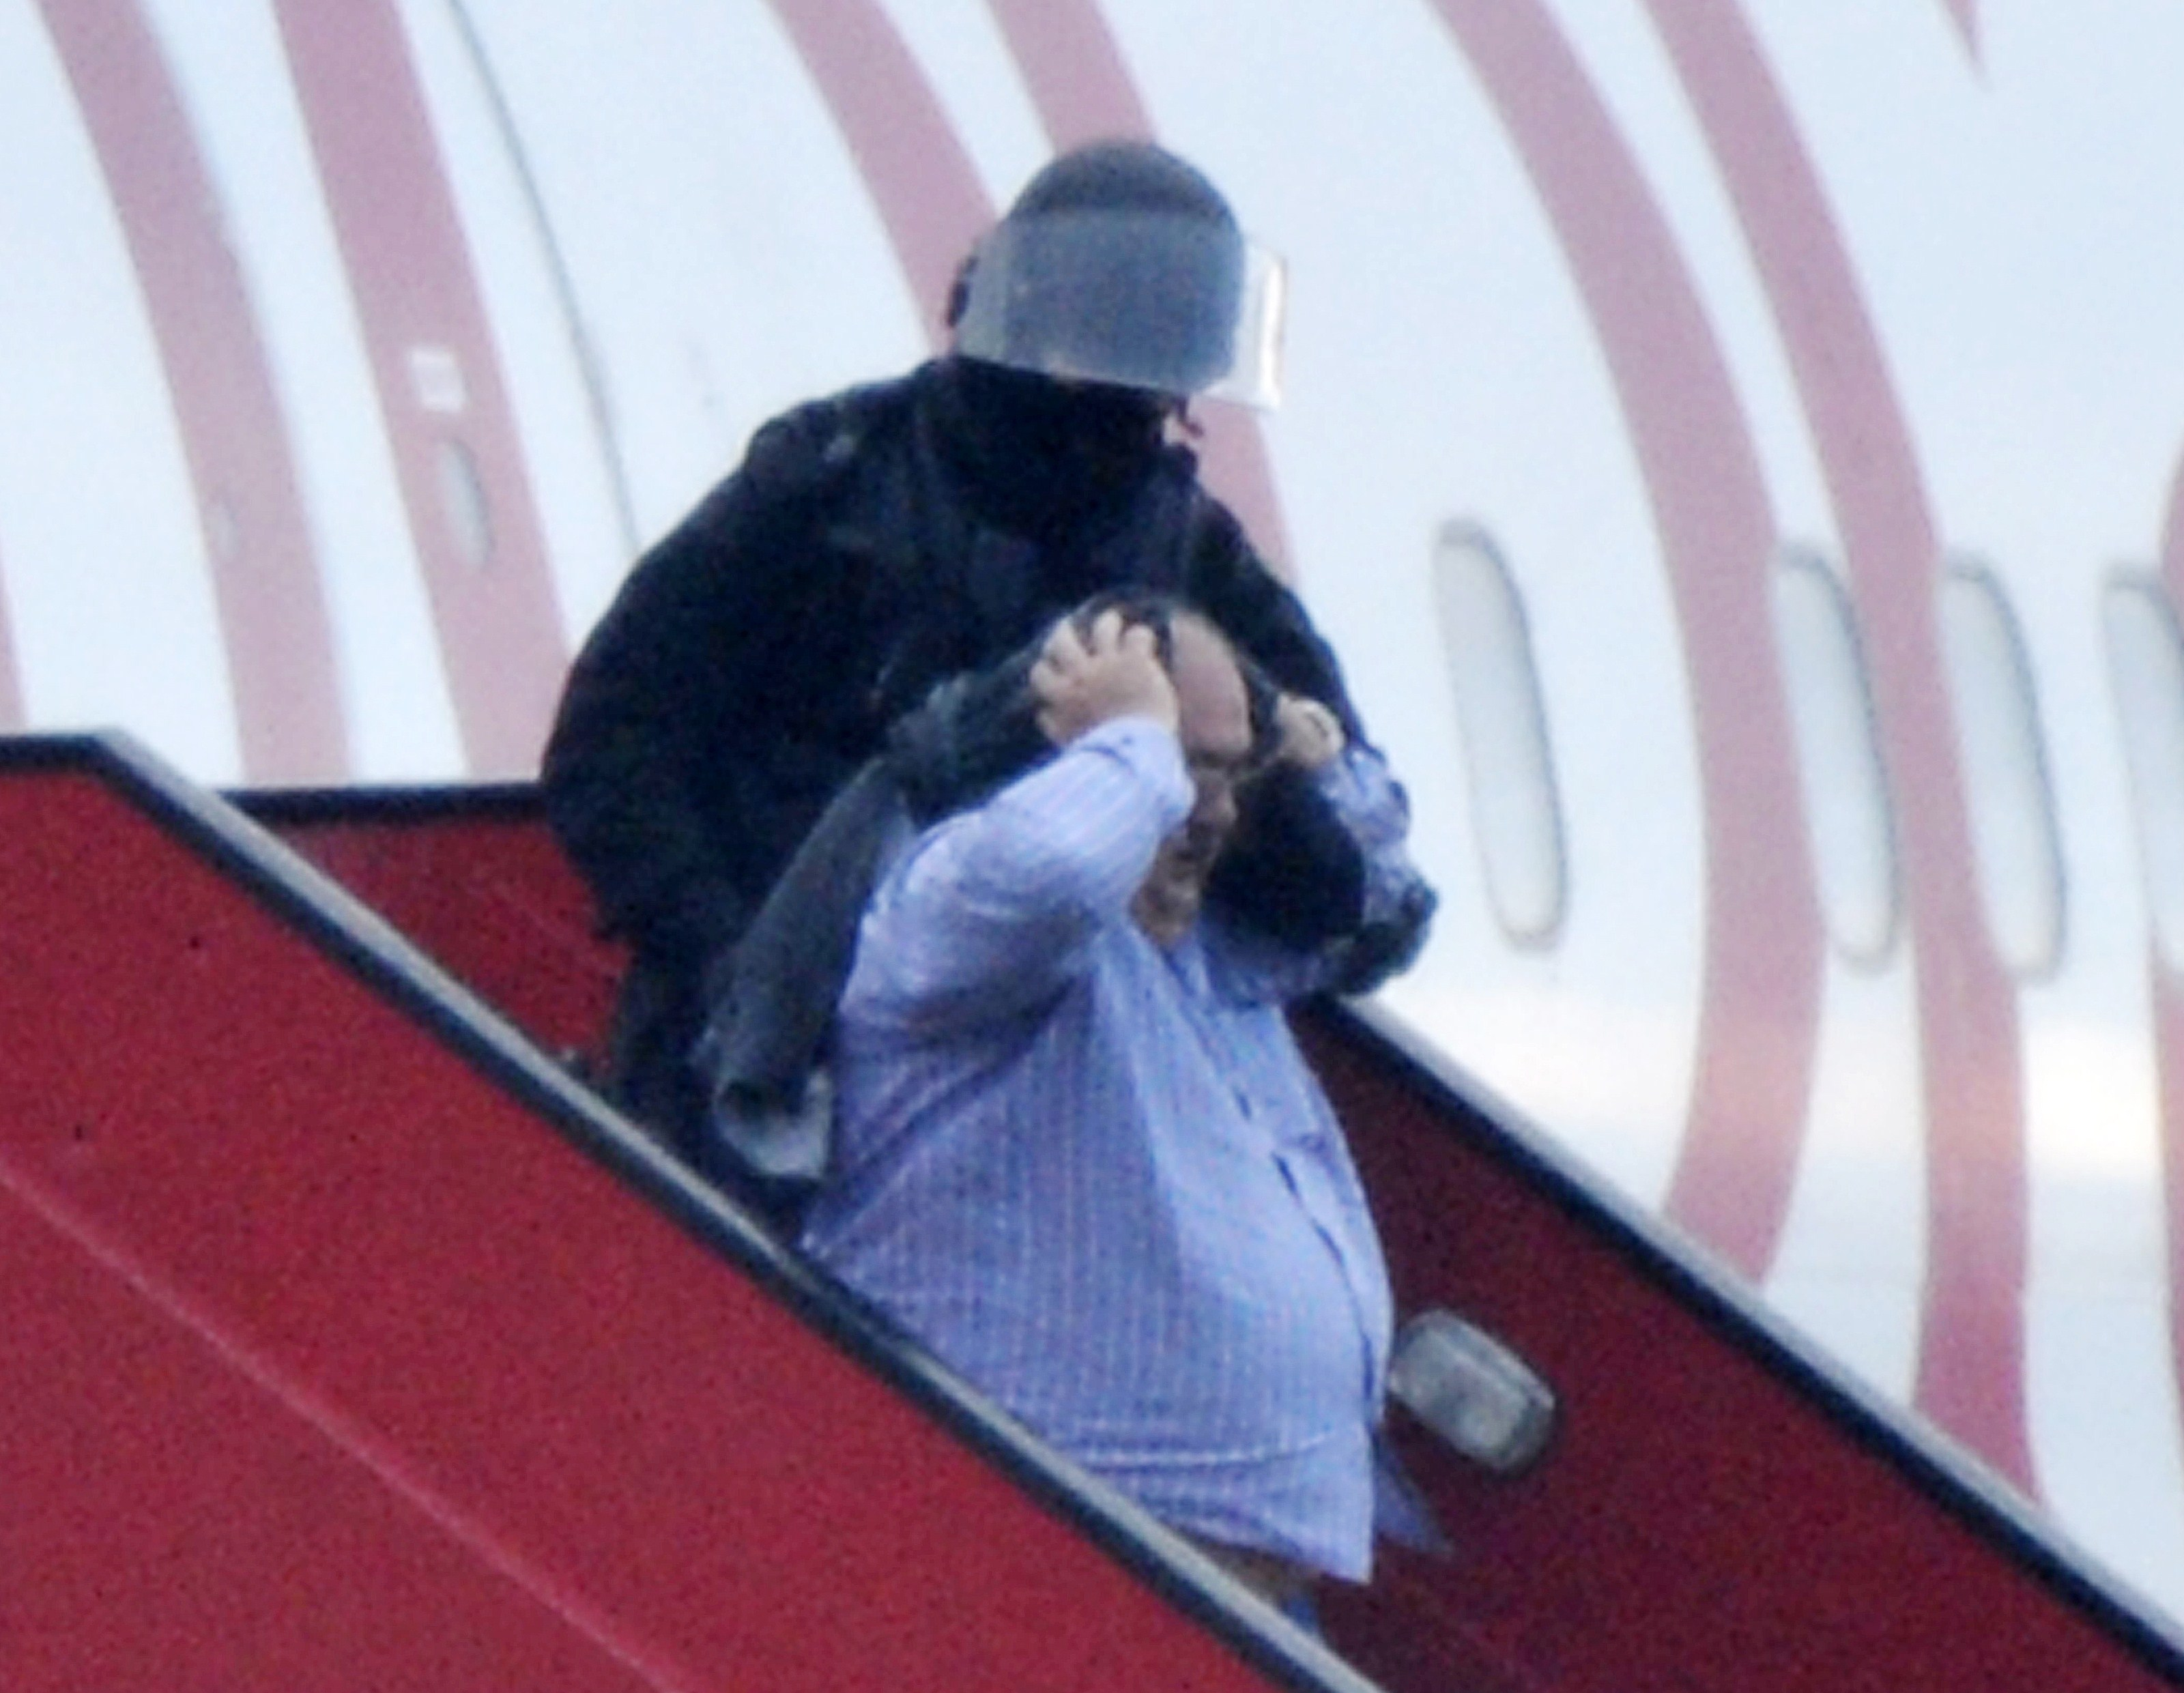 """Police evacuate passengers on February 17, 2014 from the Ethiopian Airlines flight en route to Rome, which was hijacked and forced to land in Geneva, where the hijacker has been arrested, police said. There were no immediate reports of injuries and in a statement in Addis Ababa Ethiopian Airlines said """"the passengers are safe and sound."""" The hijacker was the co-pilot, according to the Geneva airport where the plane was forced to land.  (AFP PHOTO / Richard Juilliart)"""